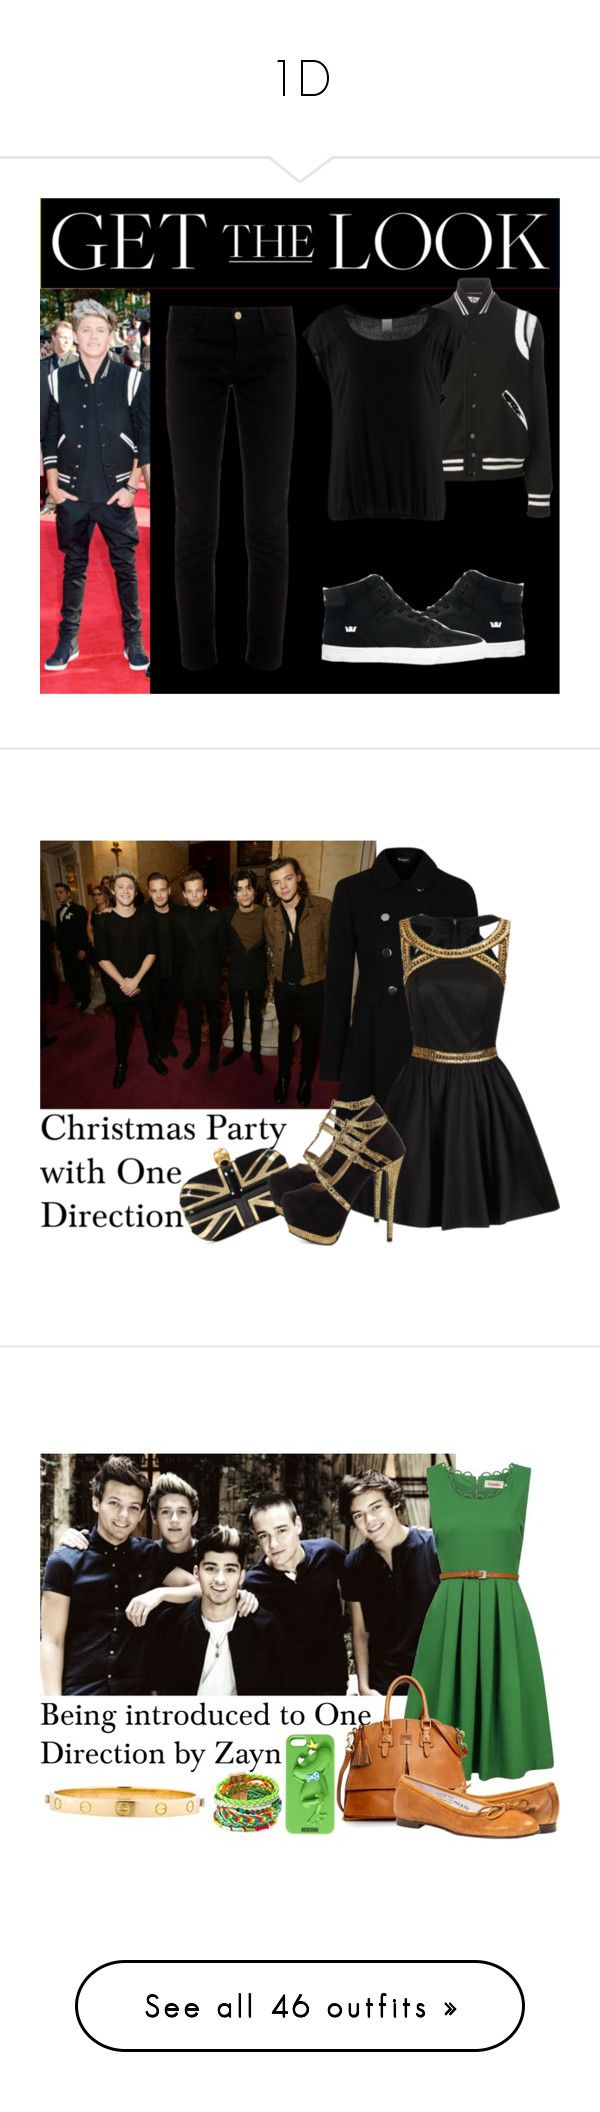 """1D"" by rumaisa-hadia ❤ liked on Polyvore featuring beauty products, gift sets & kits, eau de perfume, one direction, Yves Saint Laurent, Vero Moda, Frame, Supra, Chi Chi and Alexander McQueen"